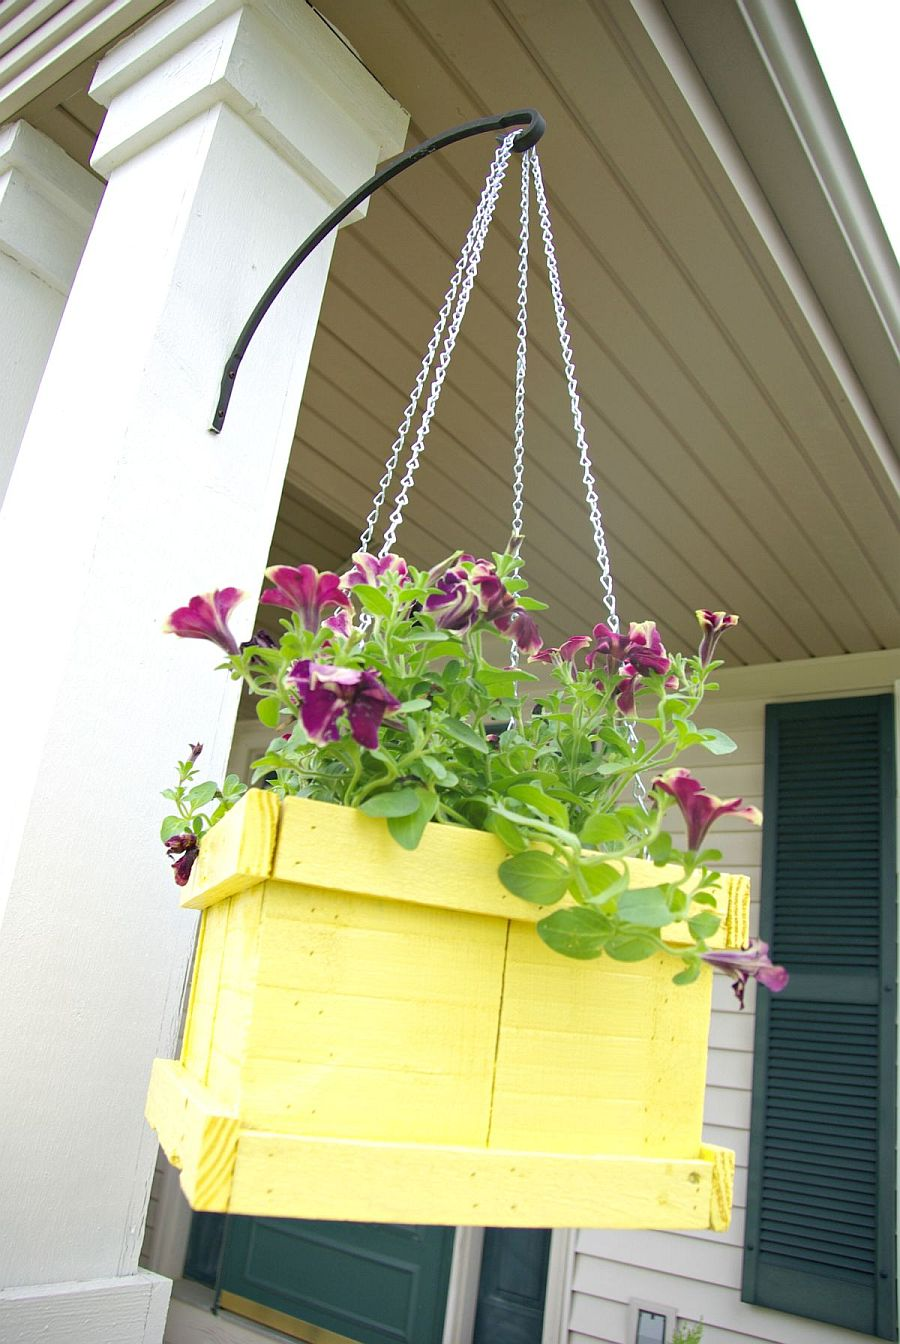 1563290188 352 27 diy flower box planters for fancy windows and beyond - 27 DIY Flower Box Planters for Fancy Windows and Beyond